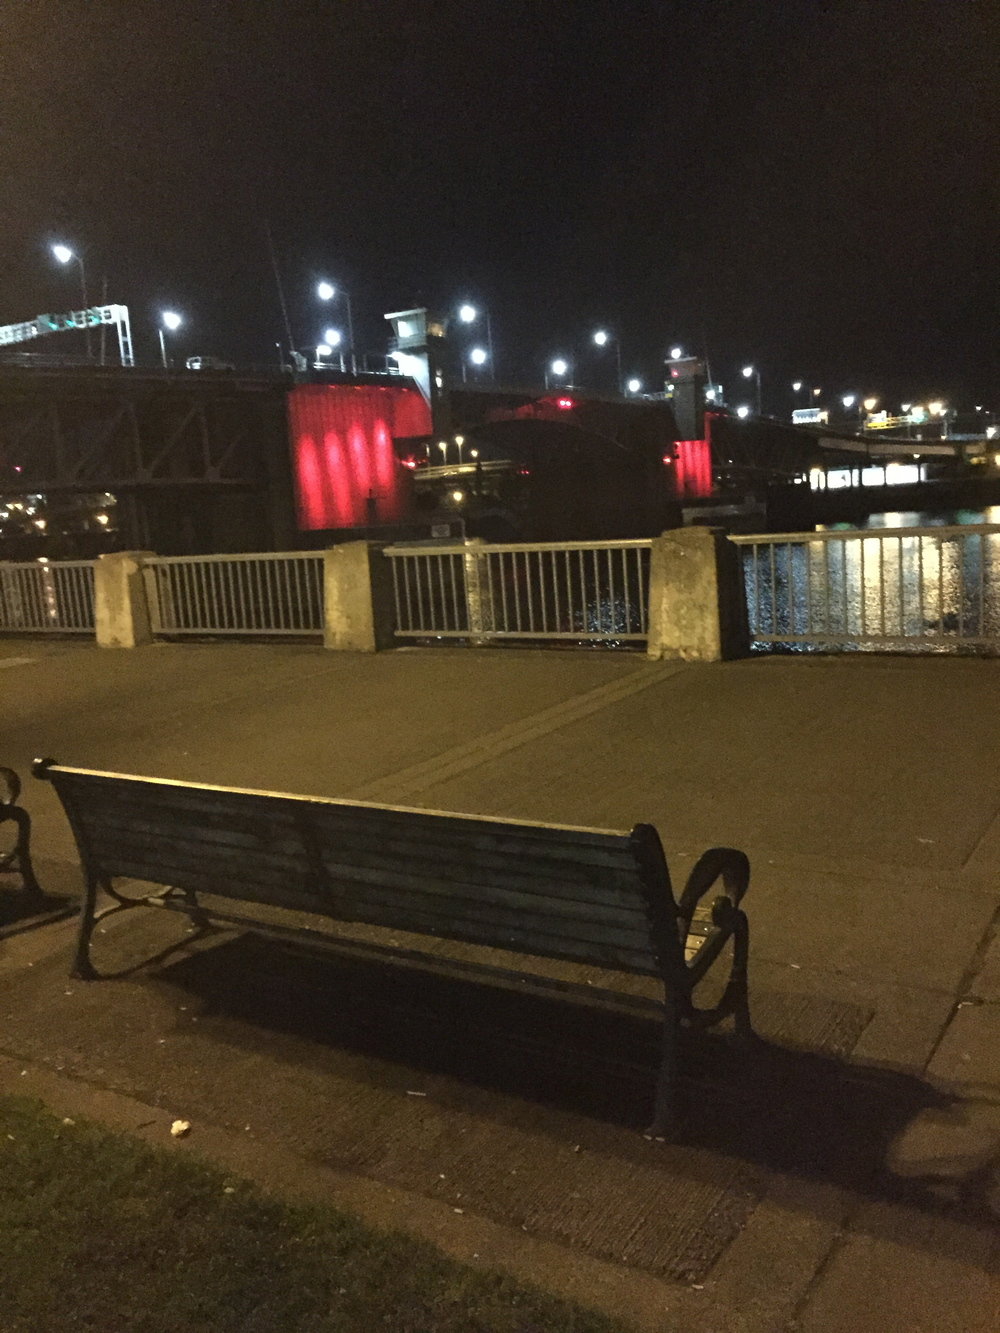 Awesome late night chats on this park bench overlooking the Willamette river right outside our hotel.